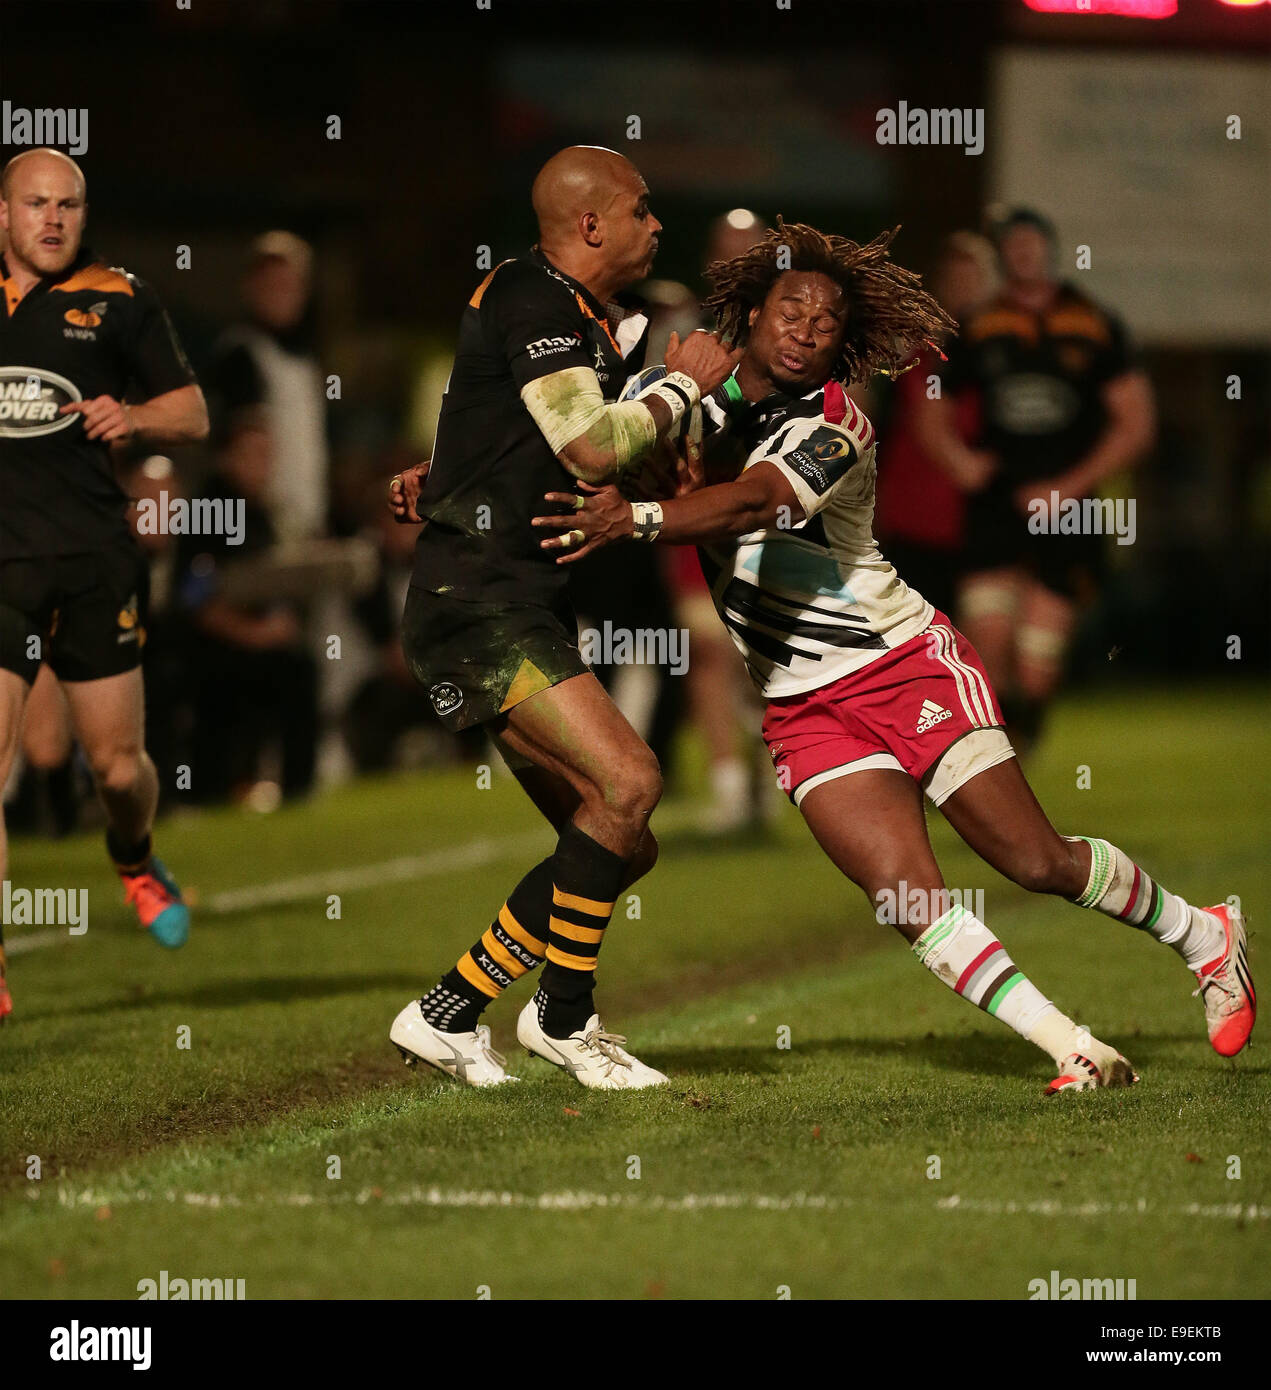 High Wycombe, UK. 26th Oct, 2014. European Rugby Champions Cup. Wasps versus Harlequins. Marland Yarde tackles Tom - Stock Image